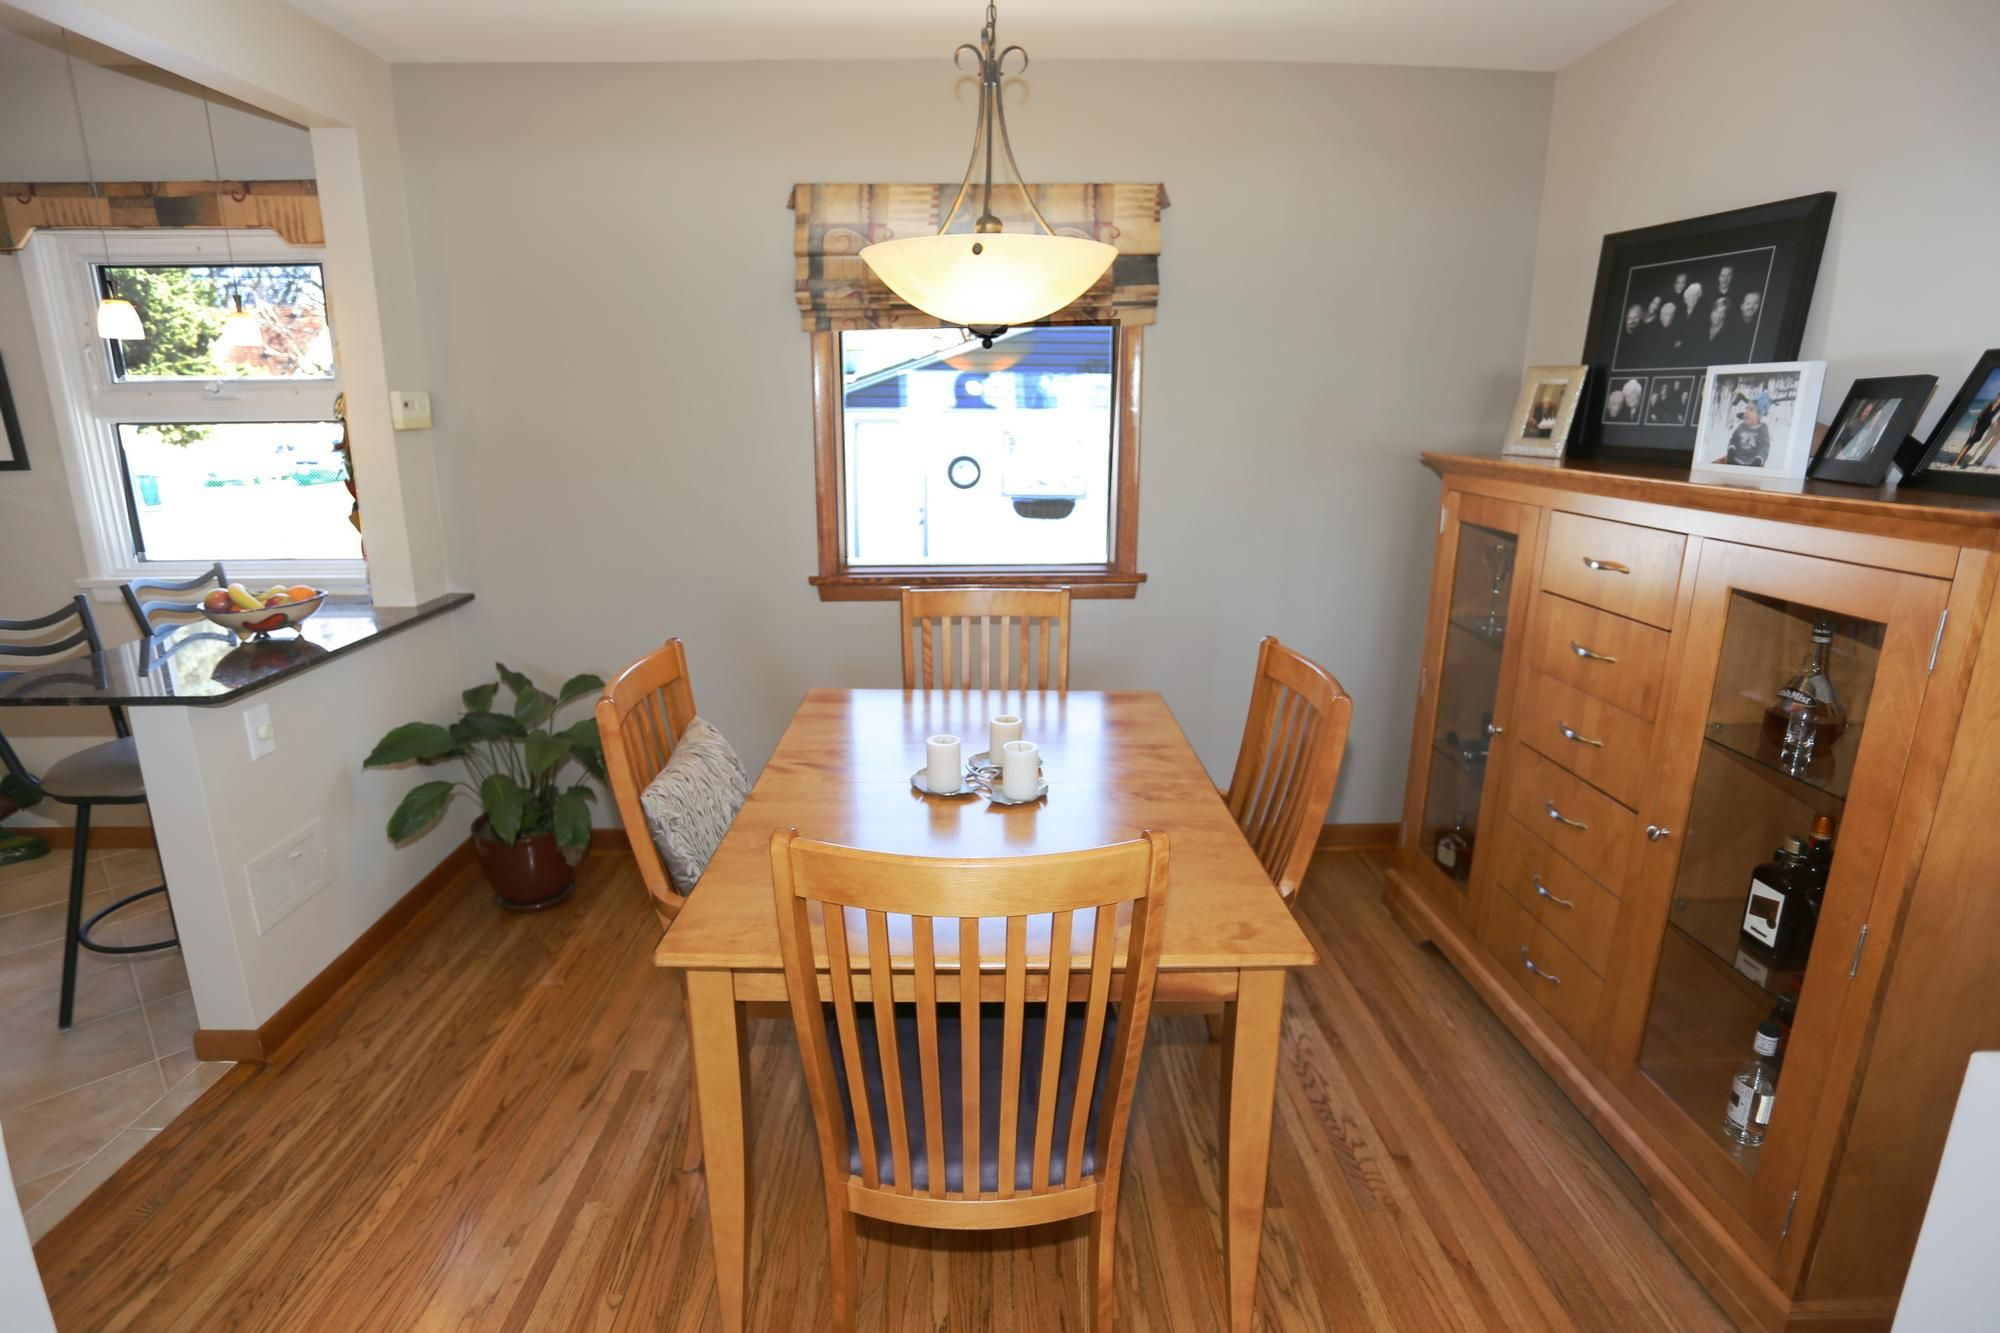 Photo 8: Photos: 349 Guildford Street in Winnipeg: St James Single Family Detached for sale (5E)  : MLS®# 1807654